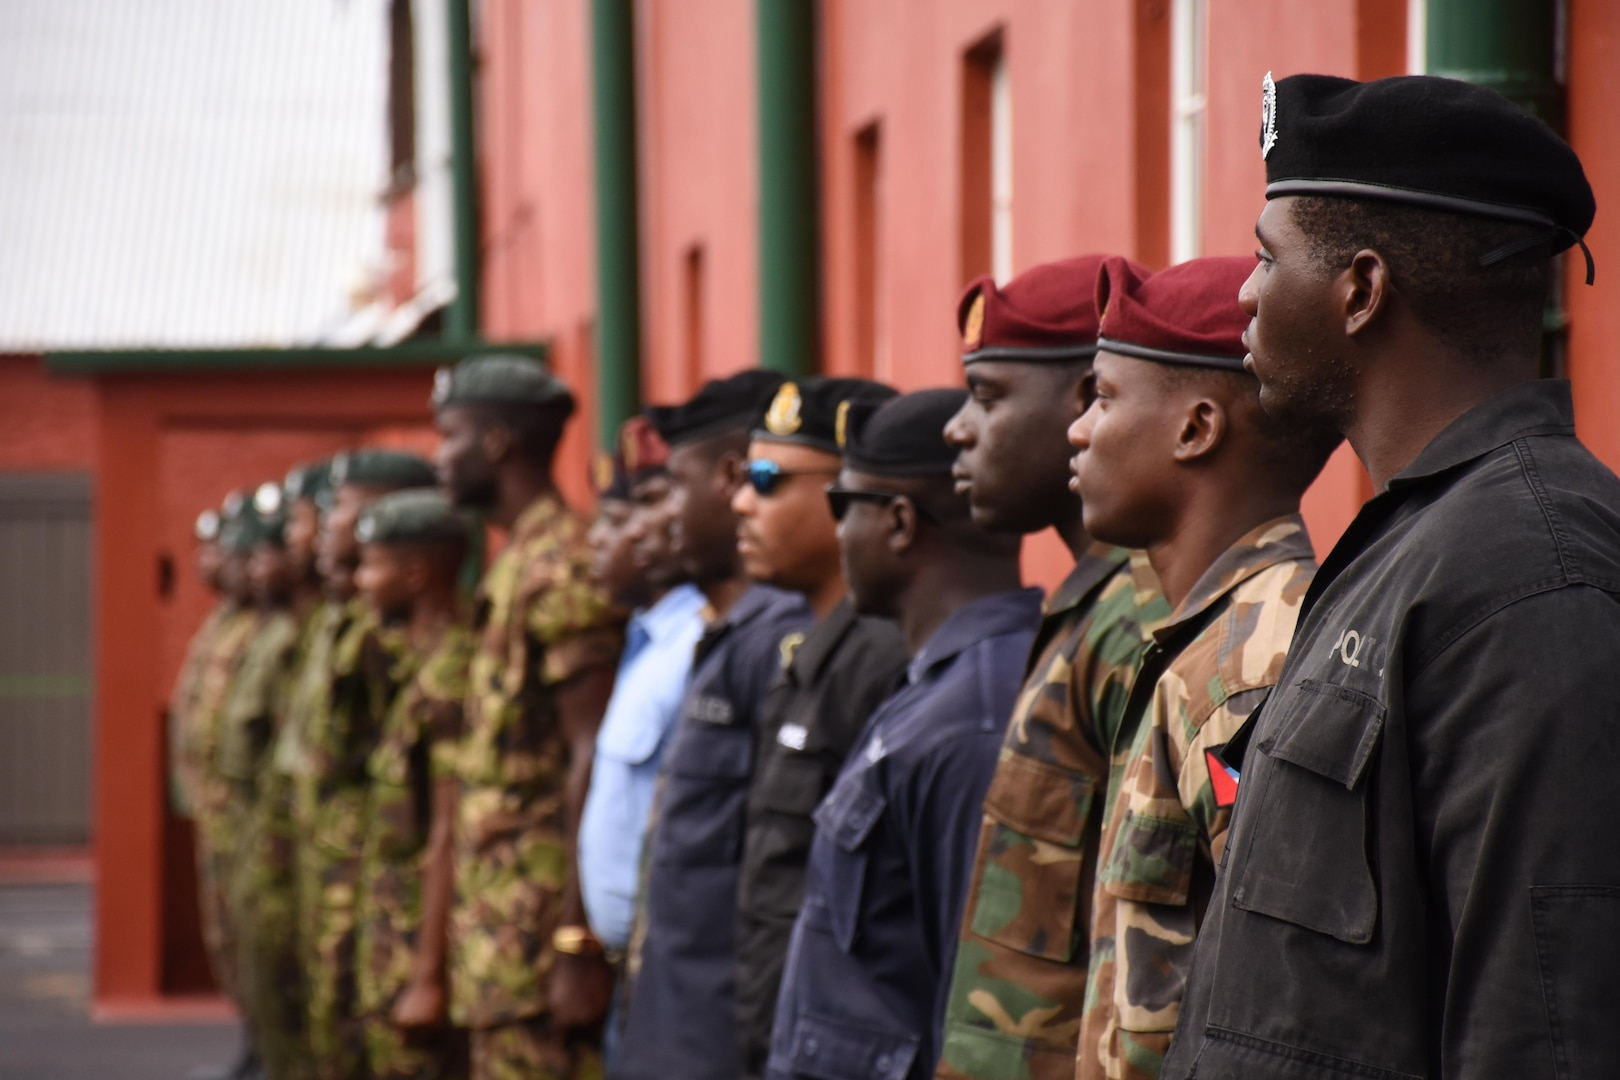 Participants from different countries stand at parade rest during the opening ceremony for Tradewinds 2017 in Bridgetown, Barbados, June 6, 2017.  Tradewinds is a joint, combined exercise conducted in conjunction with partner nations to enhance the collective abilities of defense forces and constabularies to counter transnational organized crime, and to conduct humanitarian/disaster relief operations. (U.S. Coast Guard photo by Petty Officer 1st Class Melissa Leake/Released)